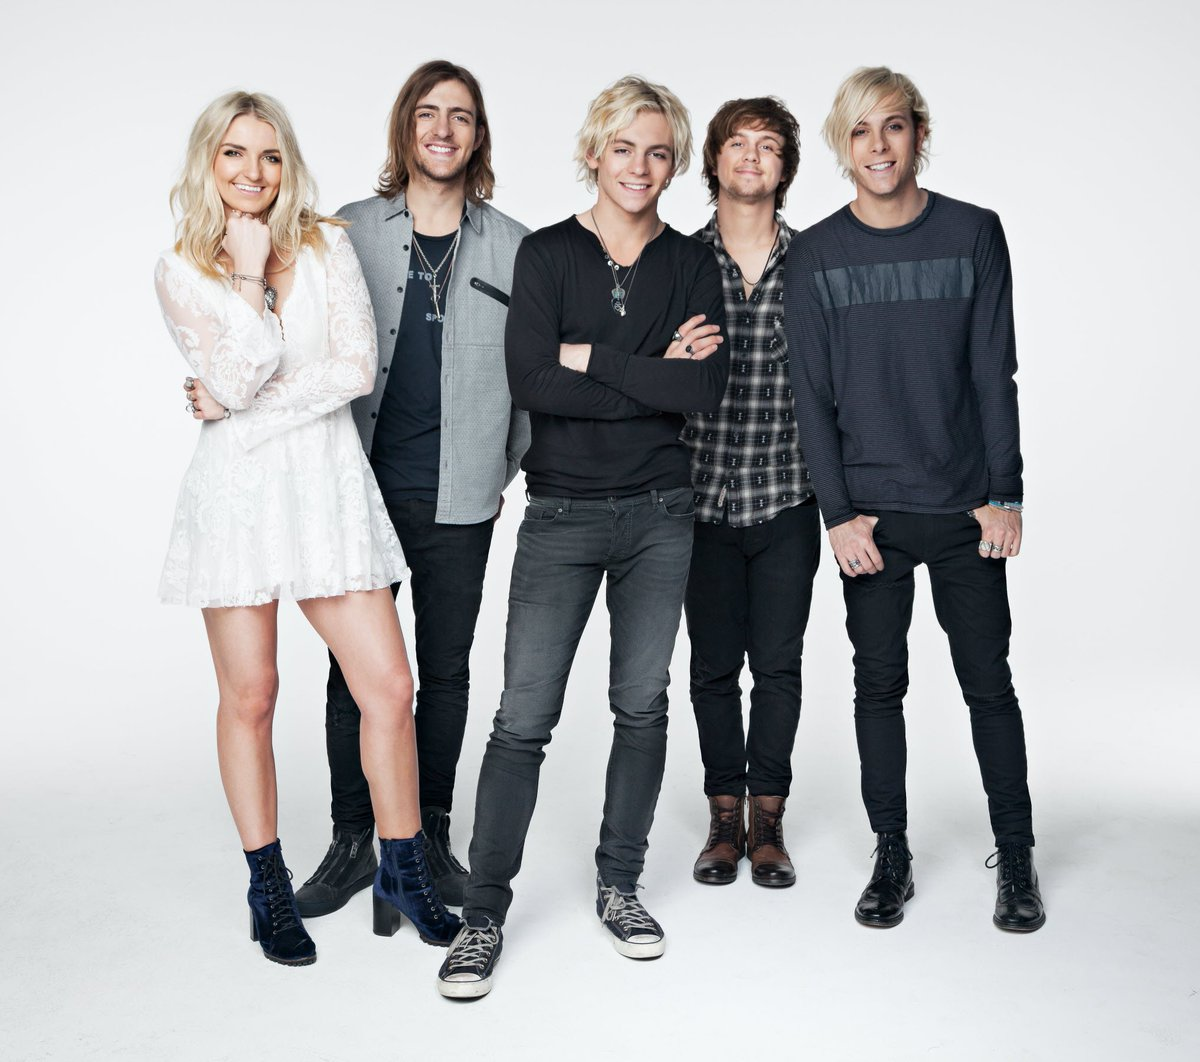 We'll be ringing in #NYE2016 with @OfficialR5 on 12/29, 12/31 & 1/1. Tix on sale now: https://t.co/Gw6iga1pcu https://t.co/uD57dsIUE8